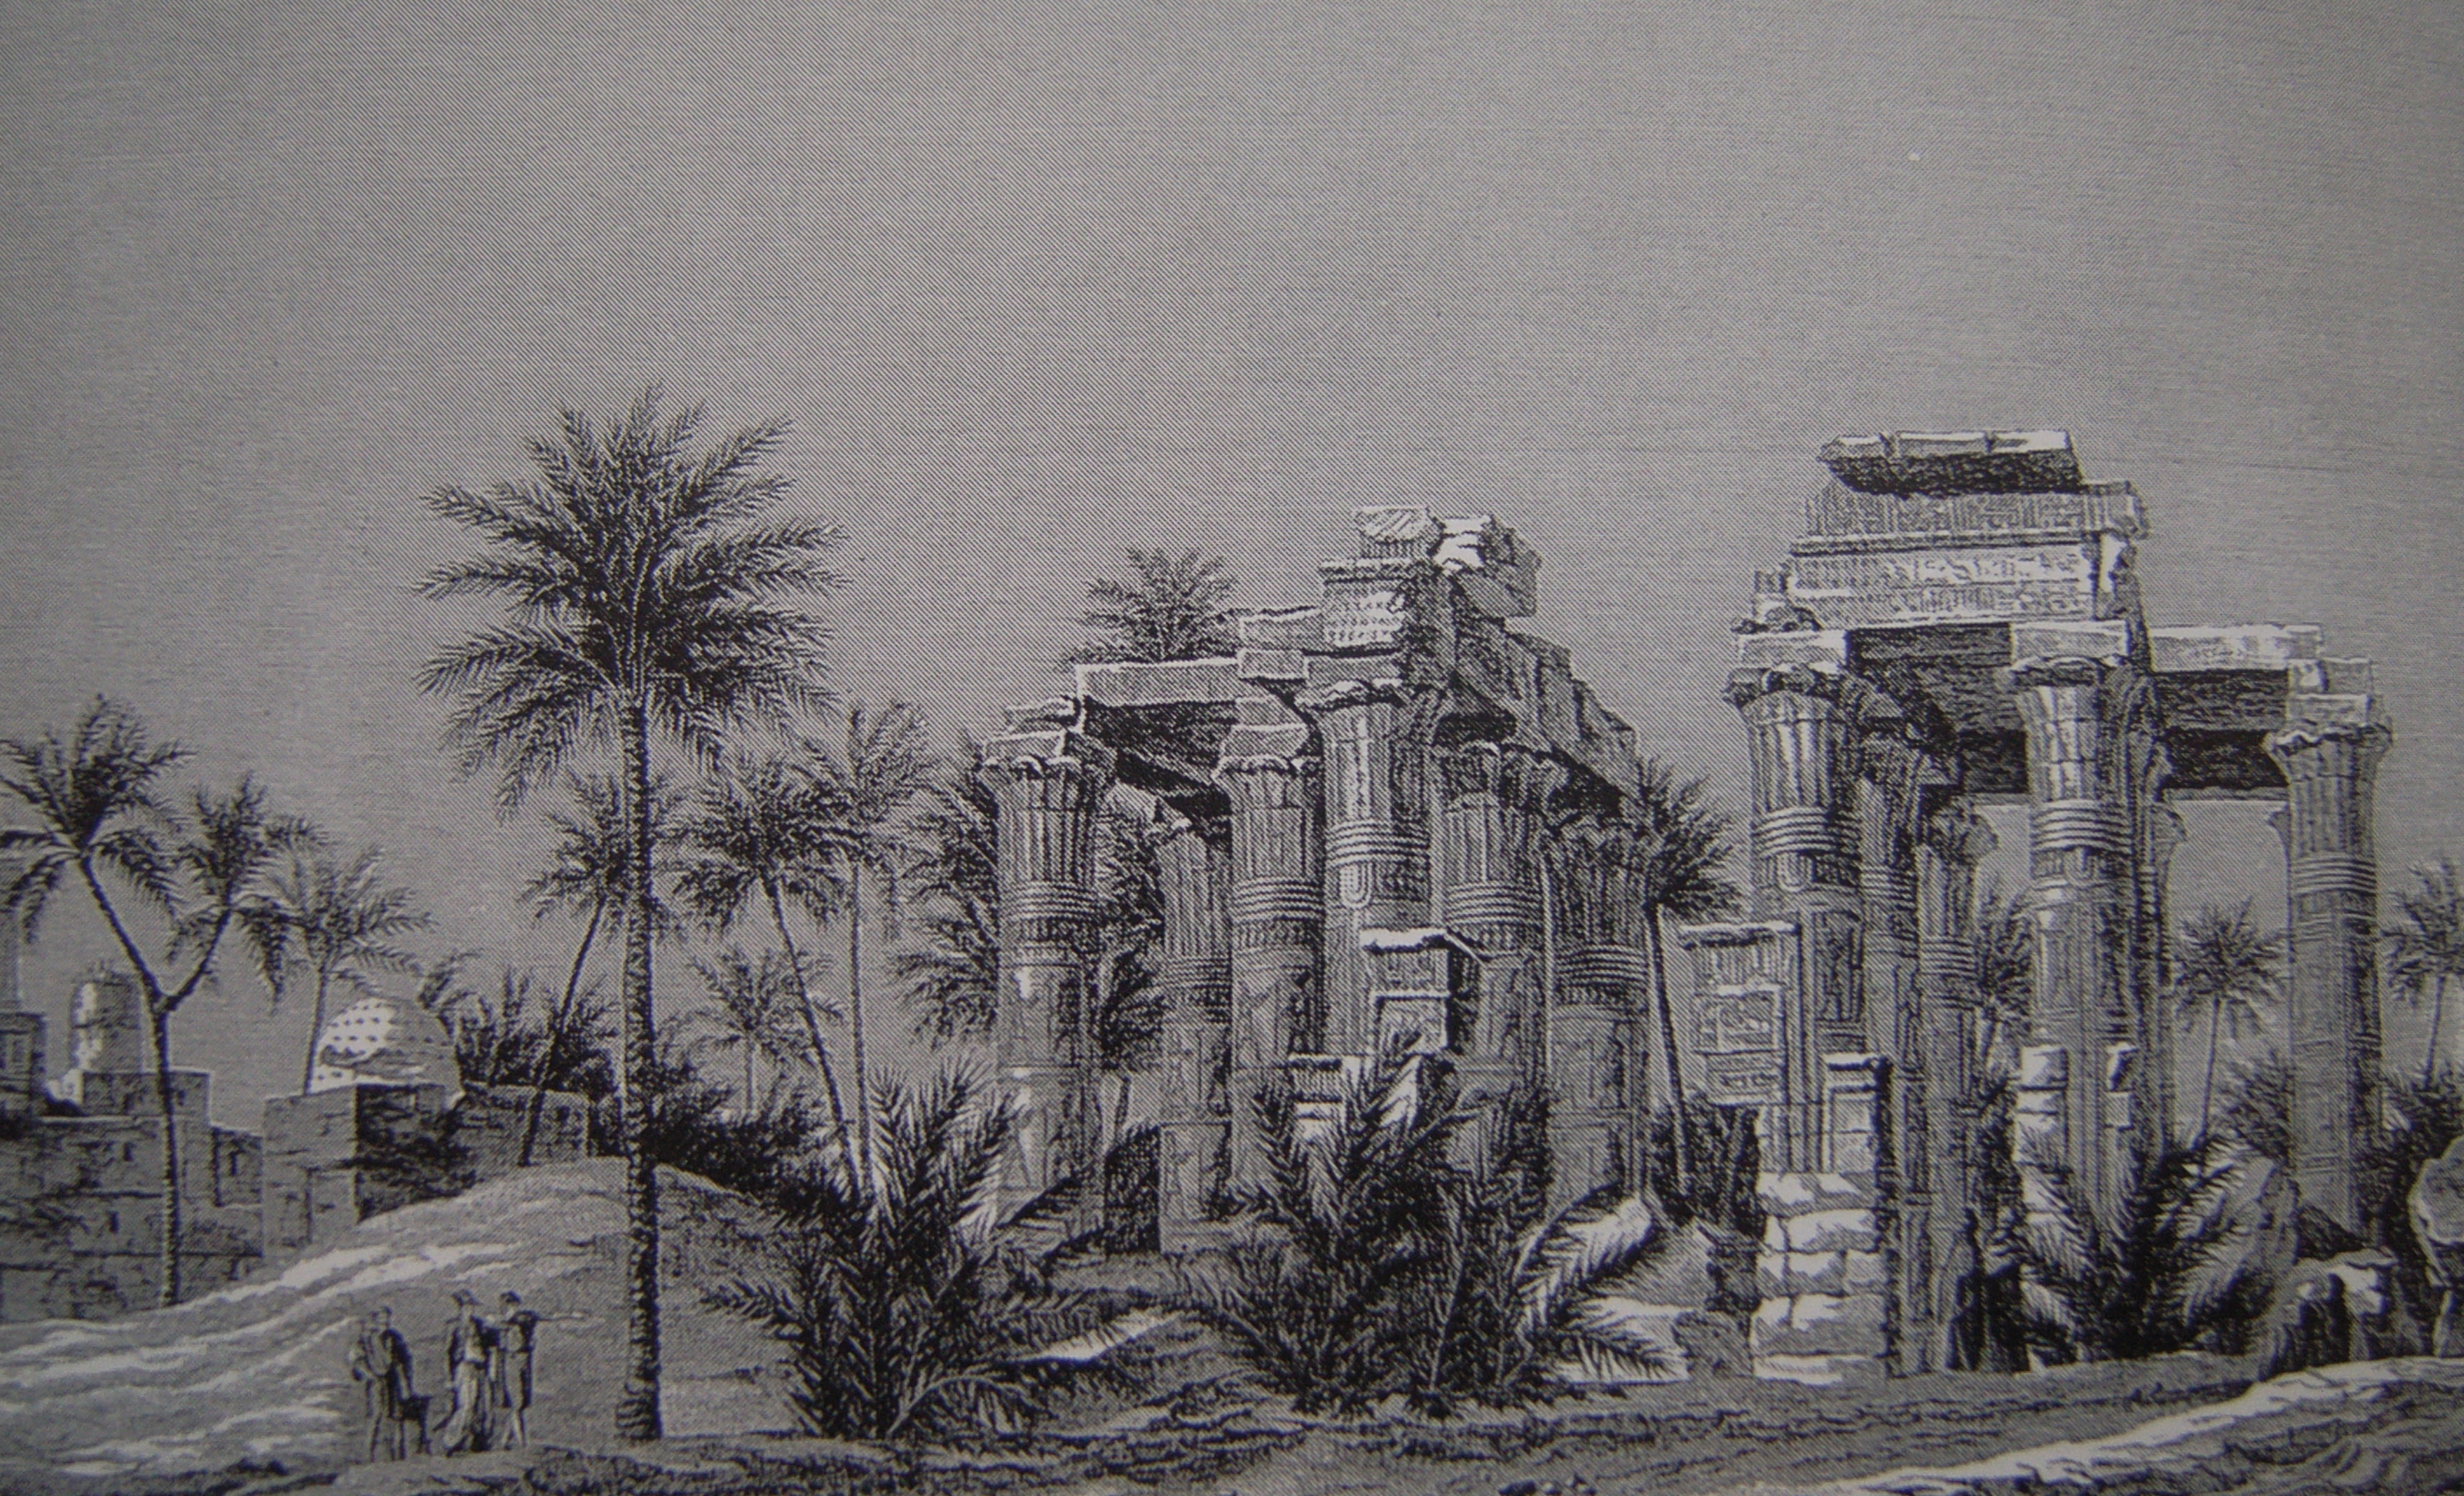 The view if Ptolemaic temple in Antaepolis (Qau el-Kebir) in Egypt